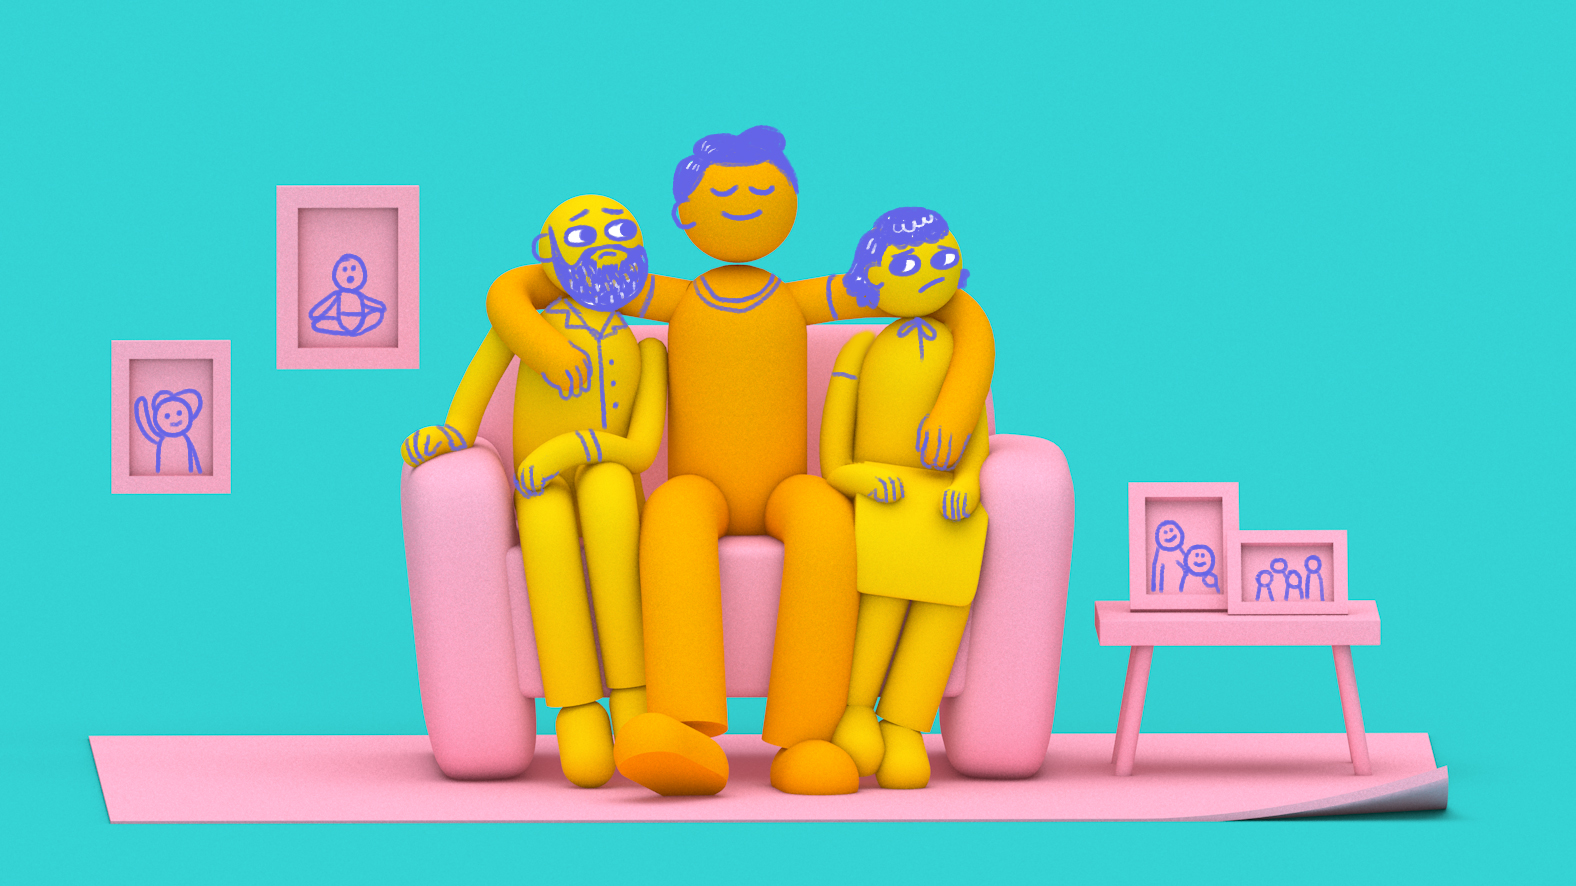 Illustration of a grown son and parents sitting on a couch to depict the rising trend of intergenerational living.